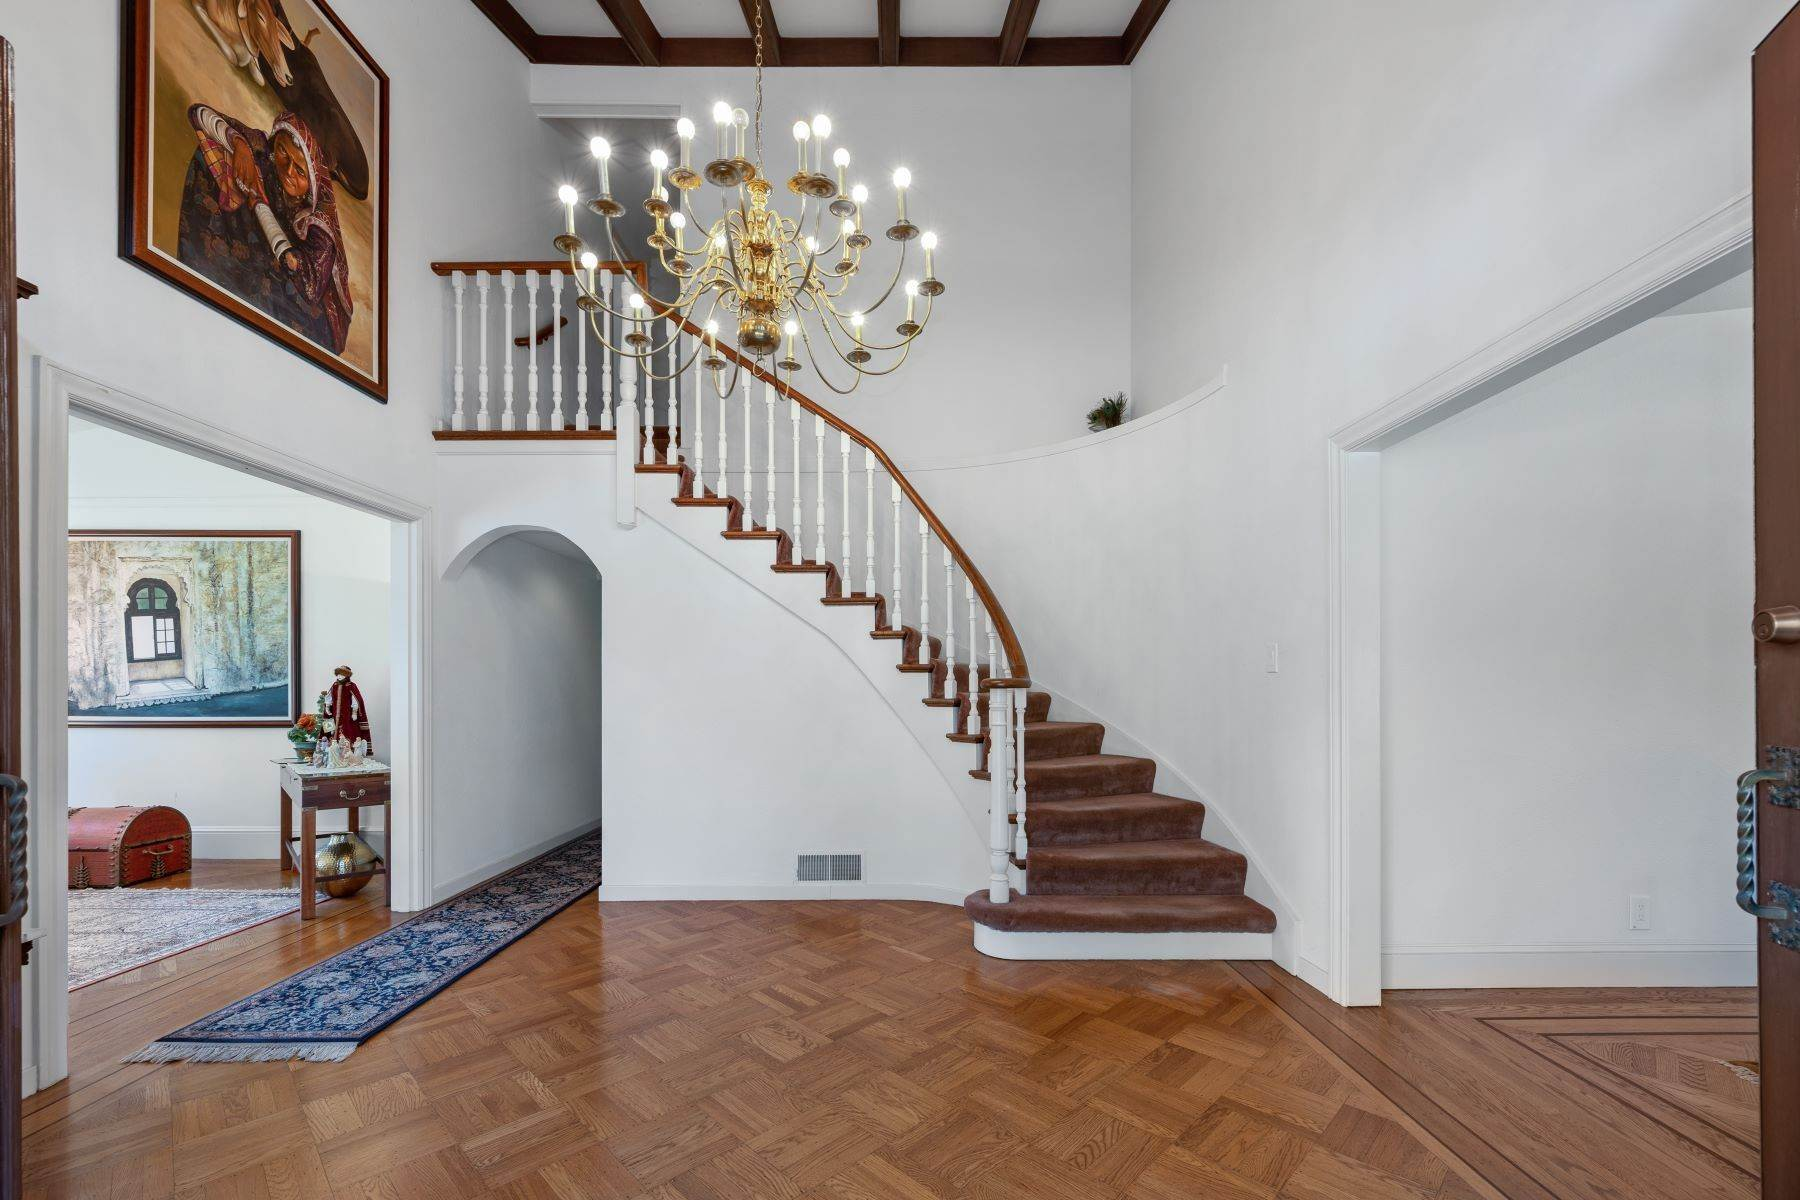 Single Family Homes for Sale at Stunning Spanish Colonial Style Home 50 Amador Avenue Atherton, California 94027 United States